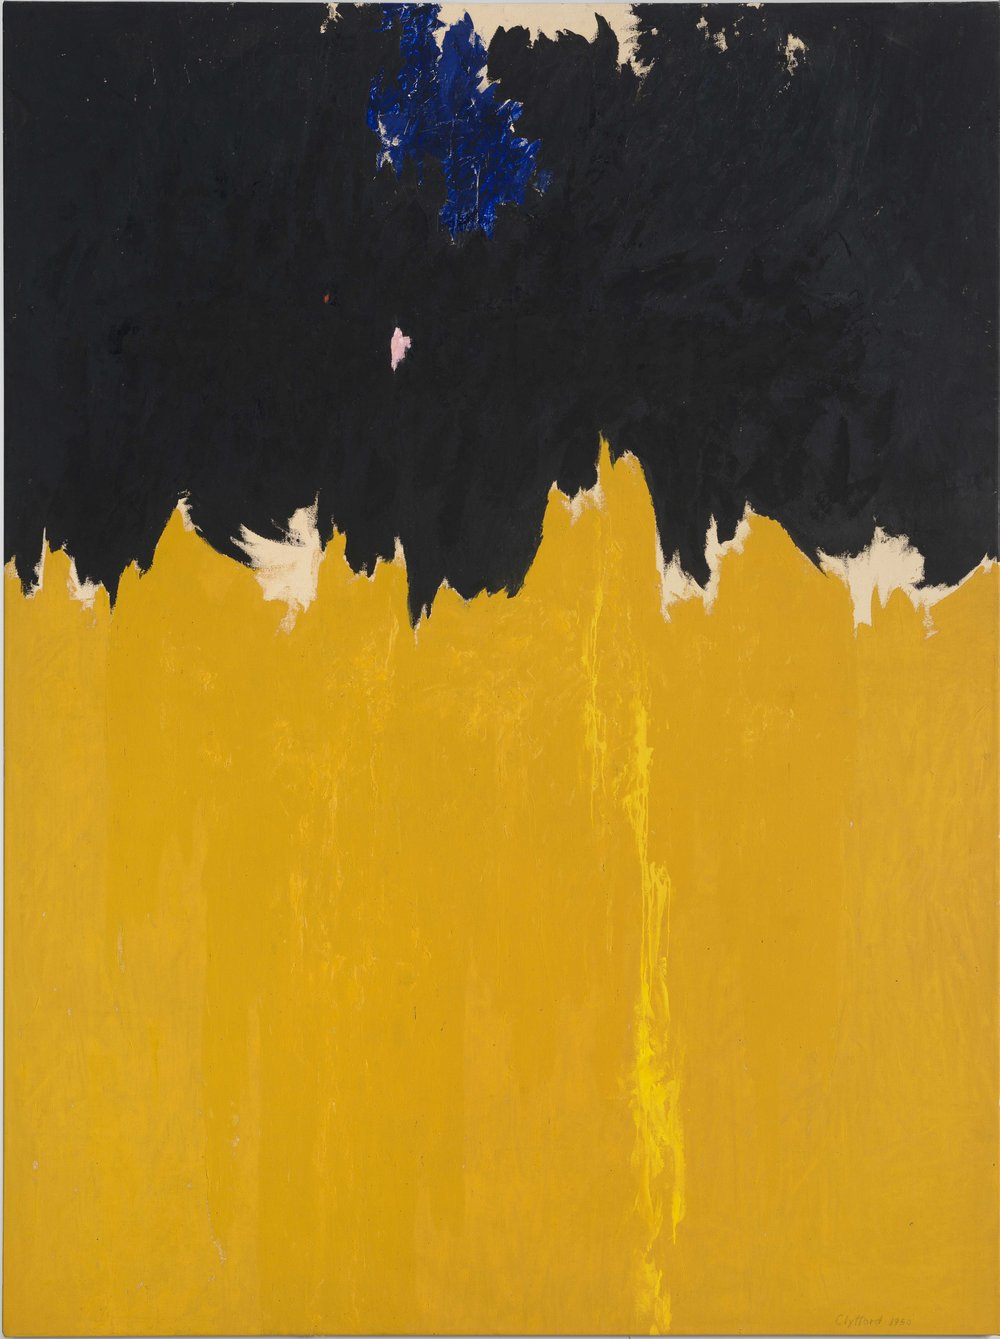 Key 119, Clyfford Still, PH-950, 1950. Oil on canvas, 233.7 x 177.8 cm. Clyfford Still Museum, Denver © City and County of Denver / DACS 2016.